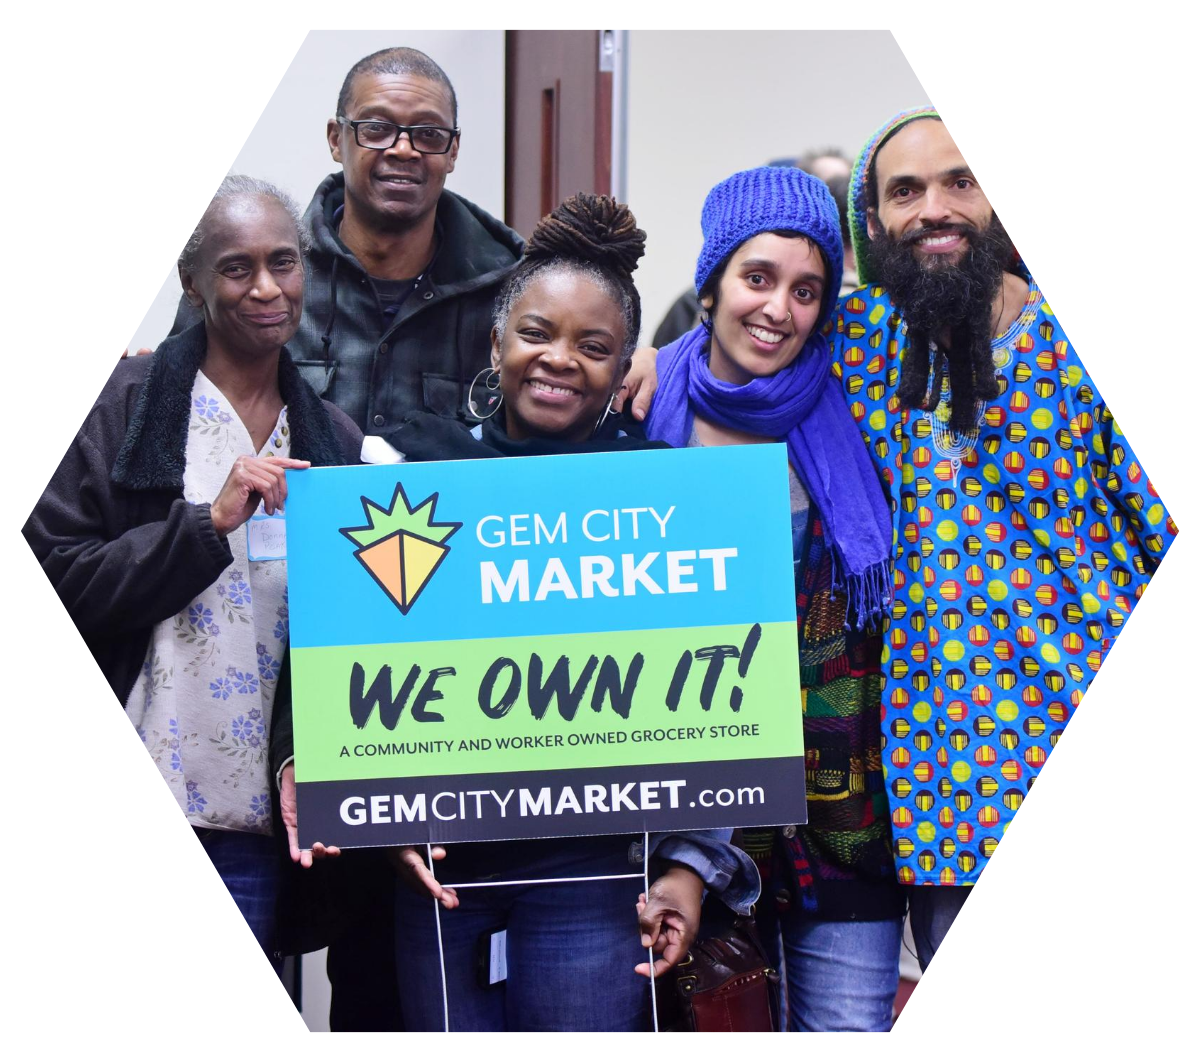 What Is Gem City Market?